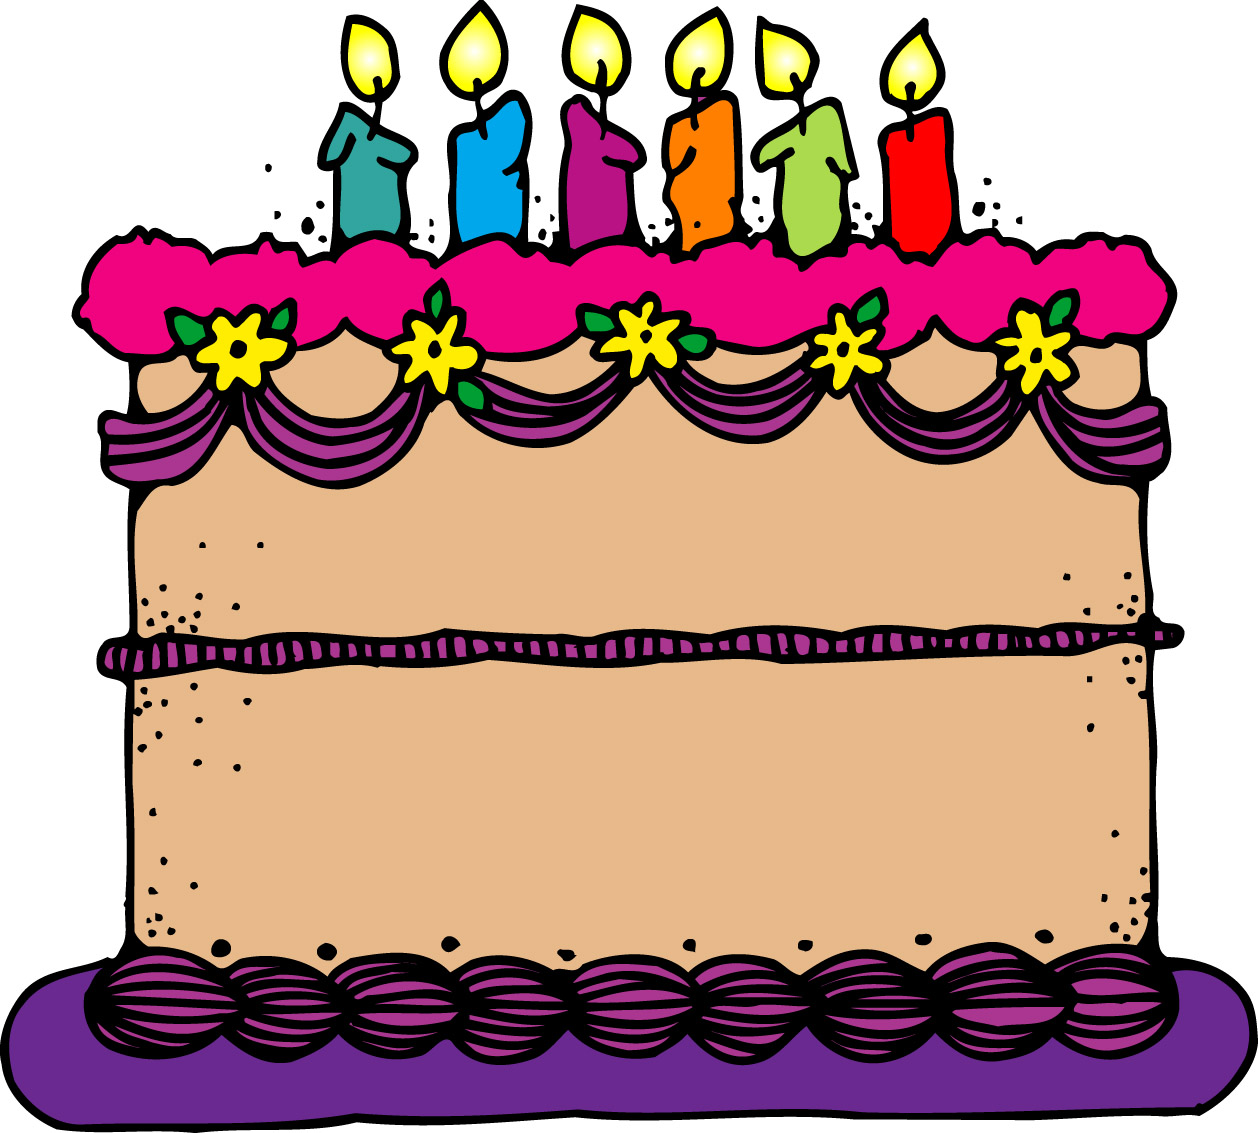 1258x1133 Birthday Cake And Balloons Clipart